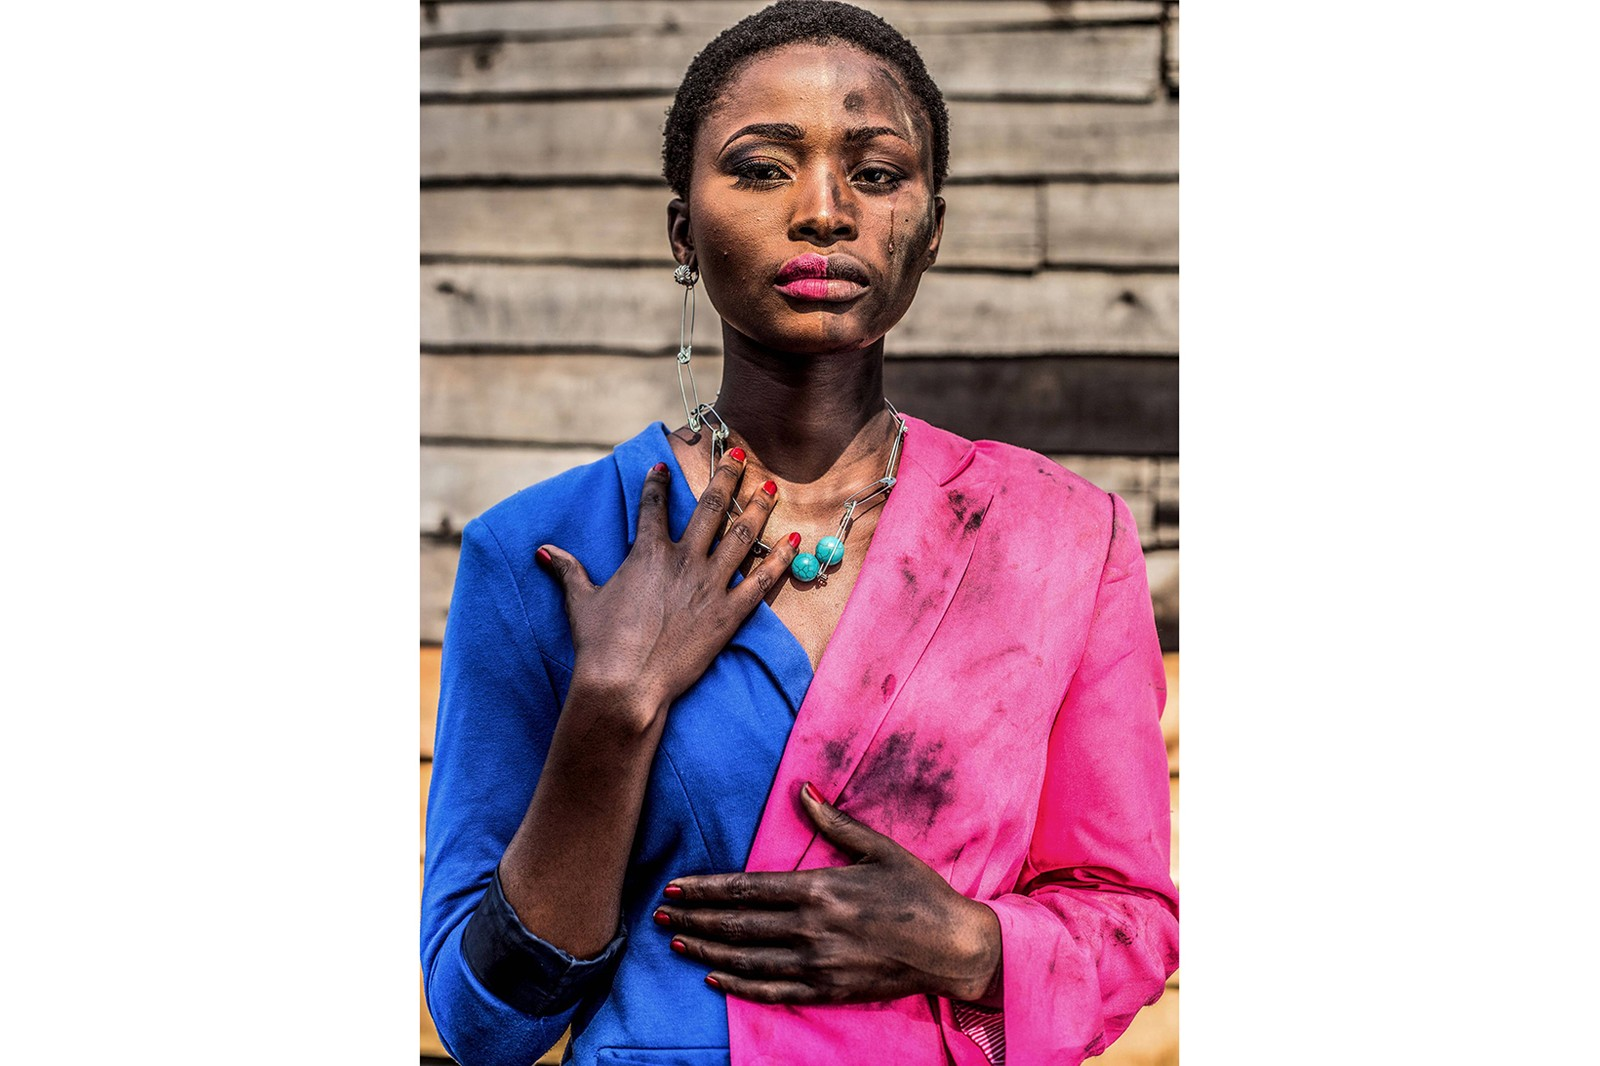 dior photography and visual arts award for young talents winner pamela tulizo johannesburg south africa